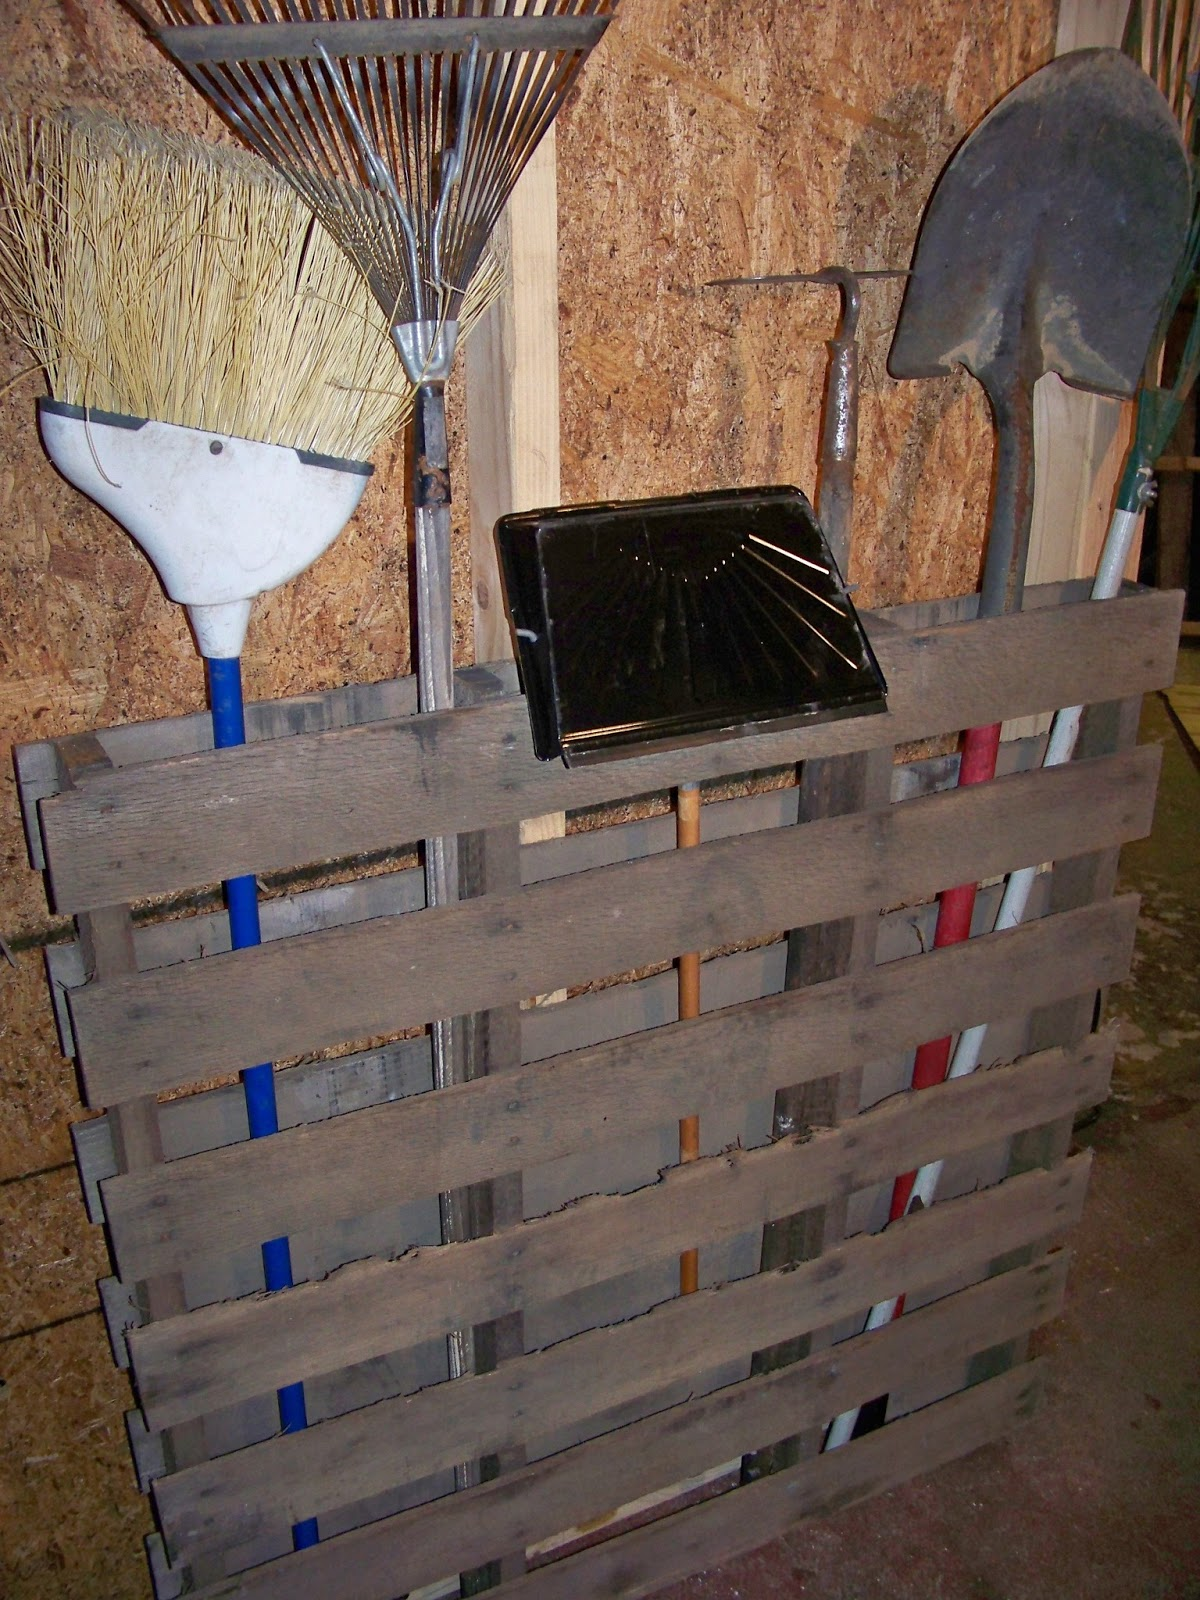 How to recycle creative things to make on recycled wood Pallet ideas